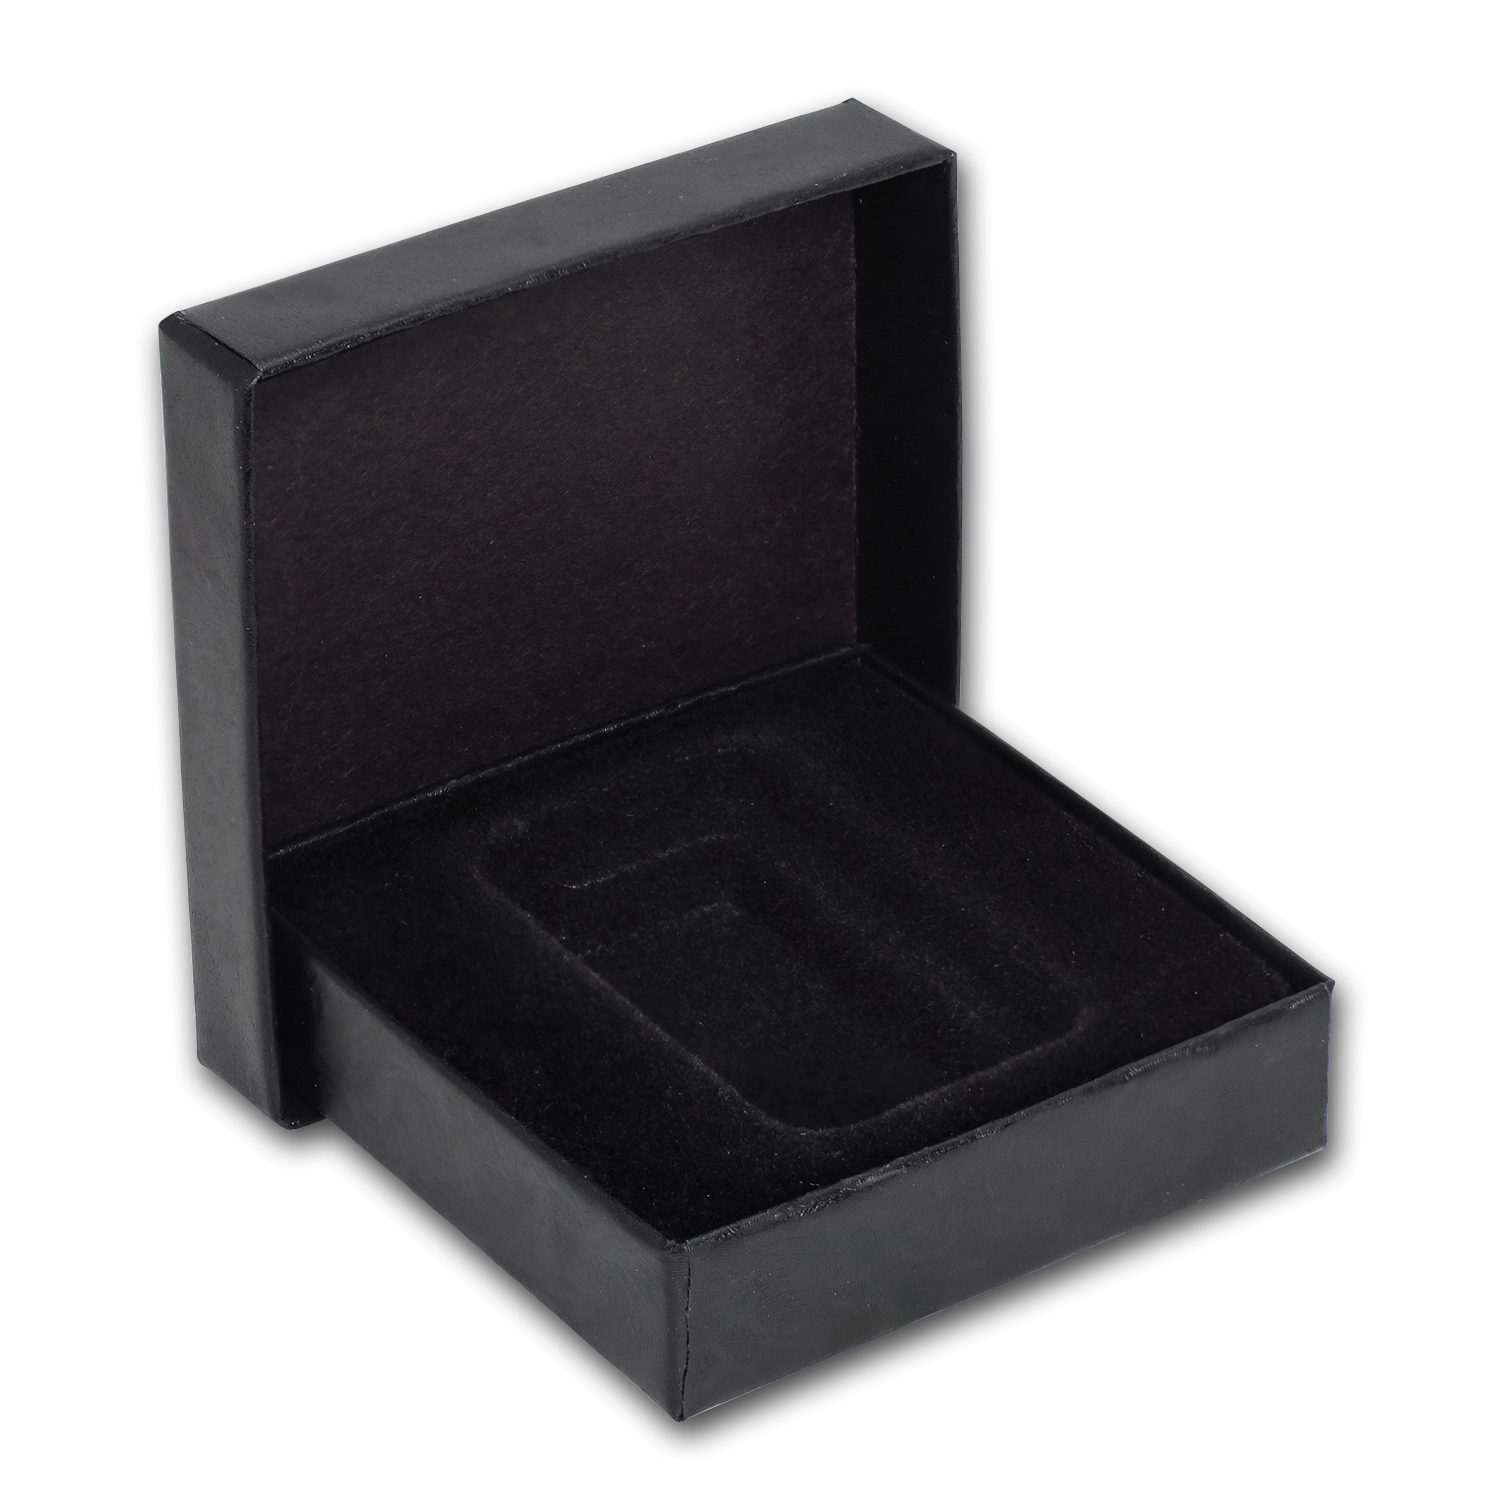 Air-Tite with Gift Box - 1 oz Silver Bar